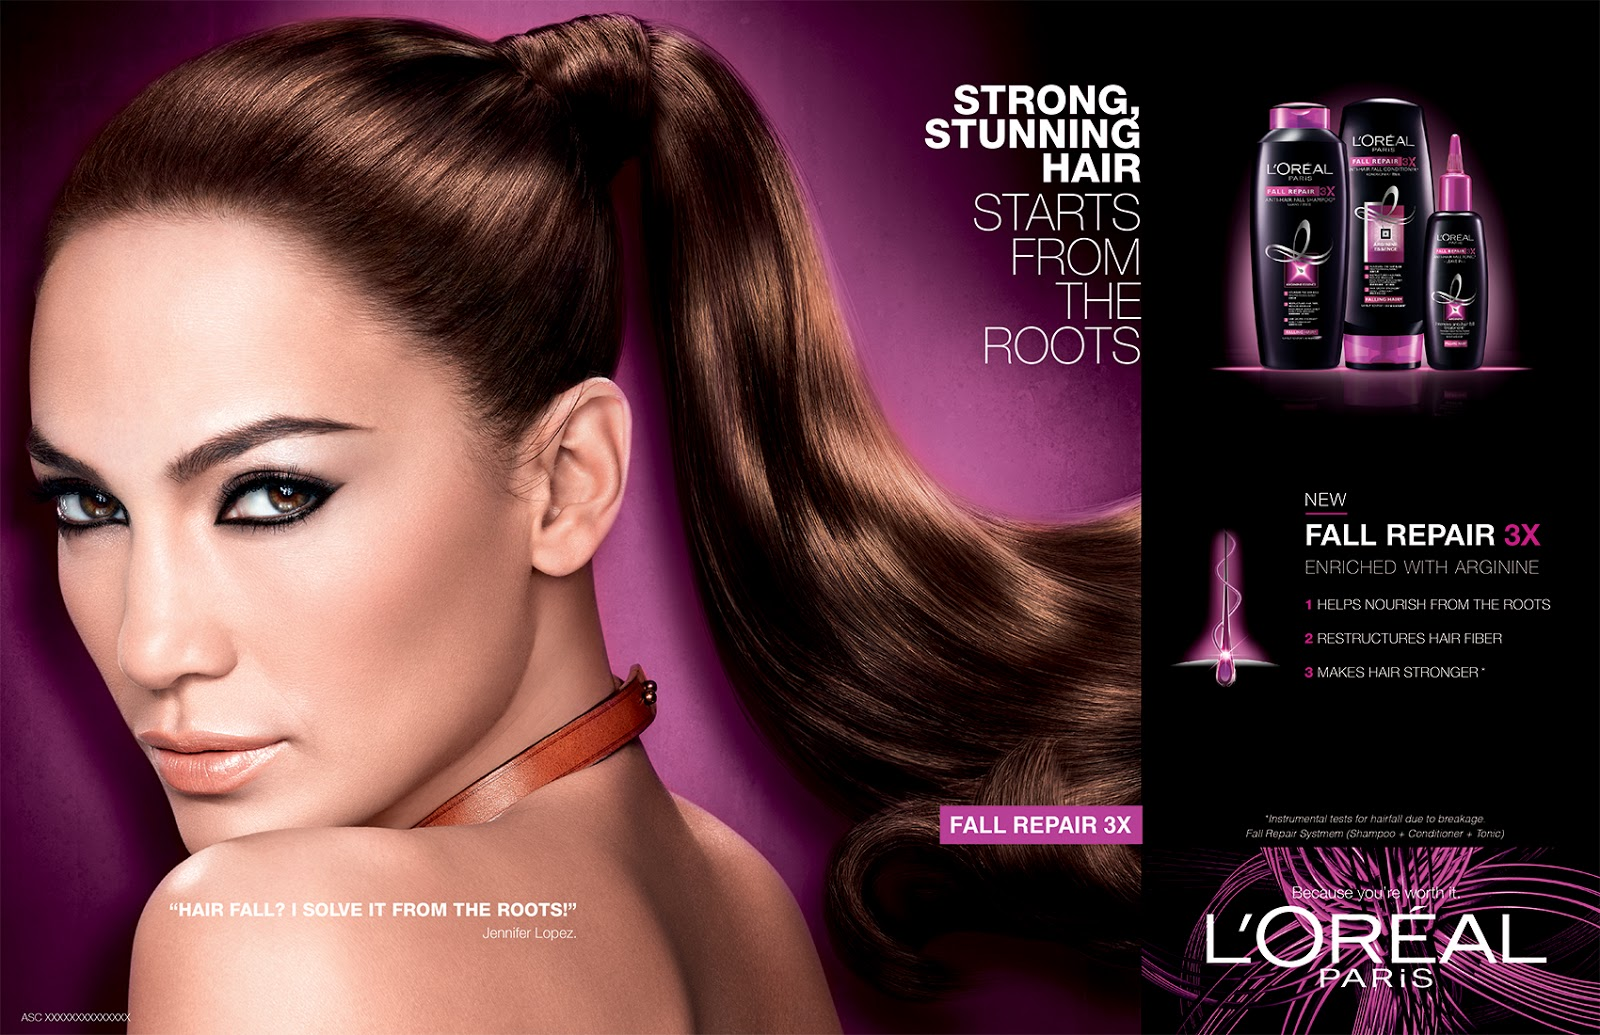 New Loreal Fall Repair 3x Anti Hair Line The Beauty Junkee Shampoo A Product Deserves Ambassador Loreals Newest Jennifer Lopez Poses For This Care Have You Seen Her Hotter Than